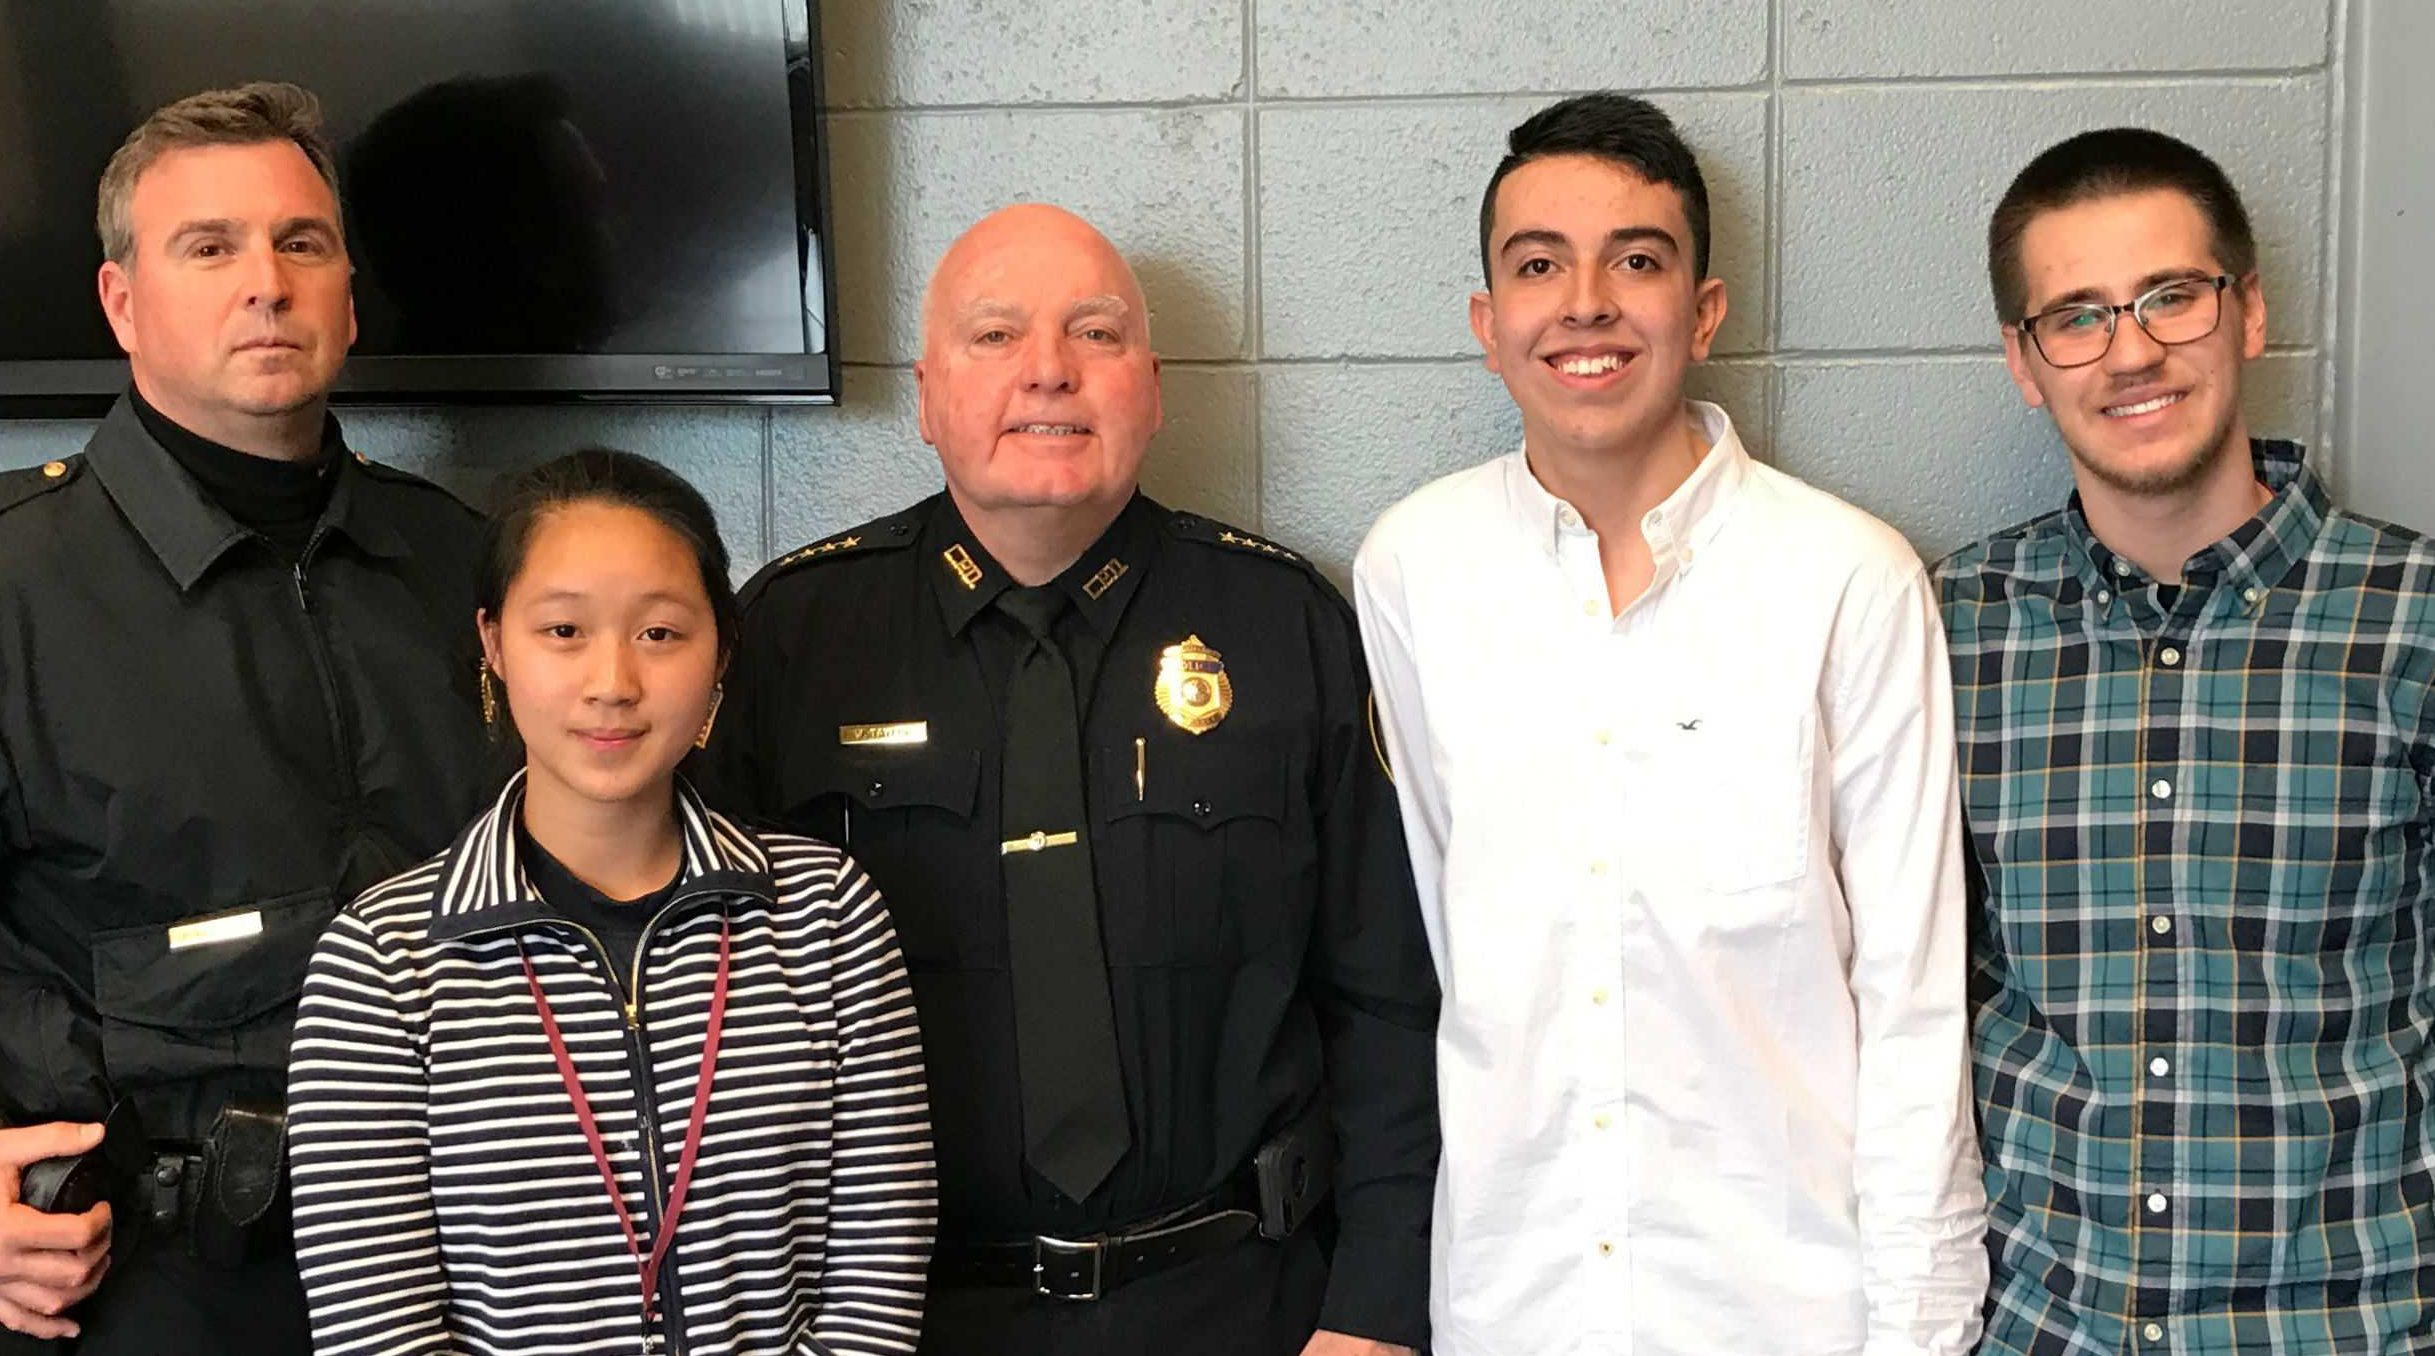 LHS students worked with police and community partners to get unwanted guns off the streets in the City.